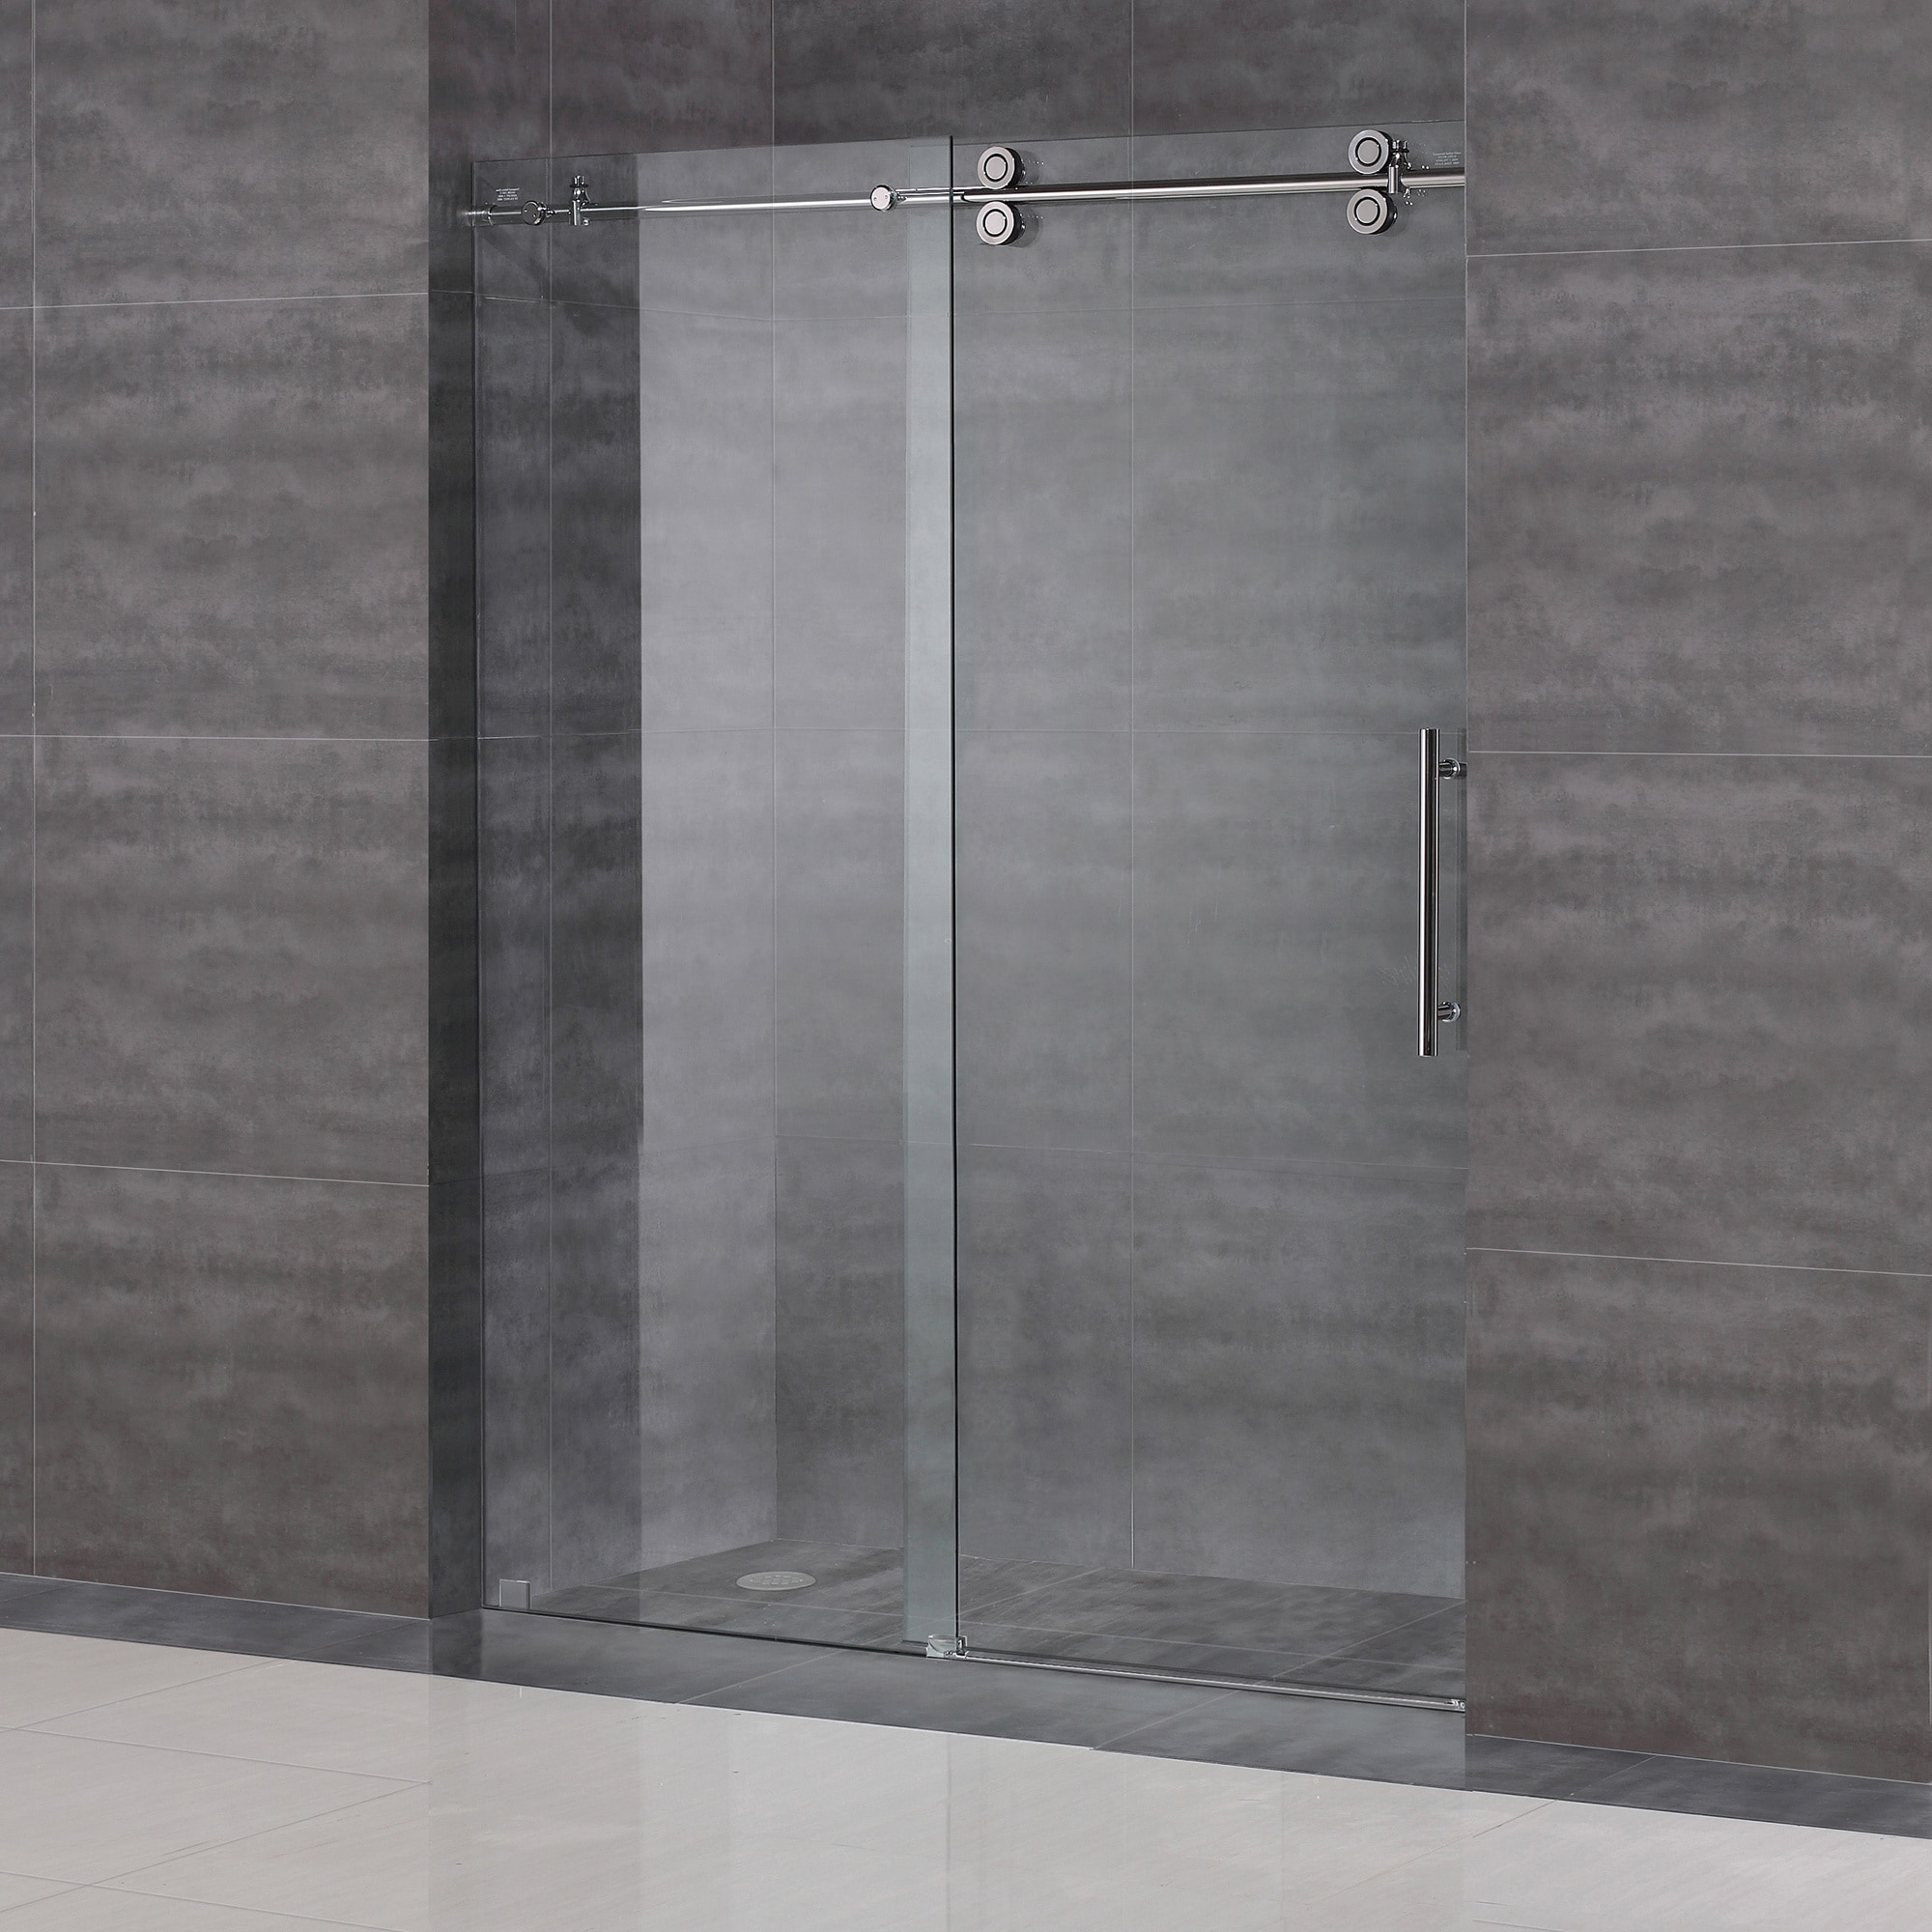 glass quality hinged bathroom bath bathtub enclosures sliding shower doors frameless and prices door